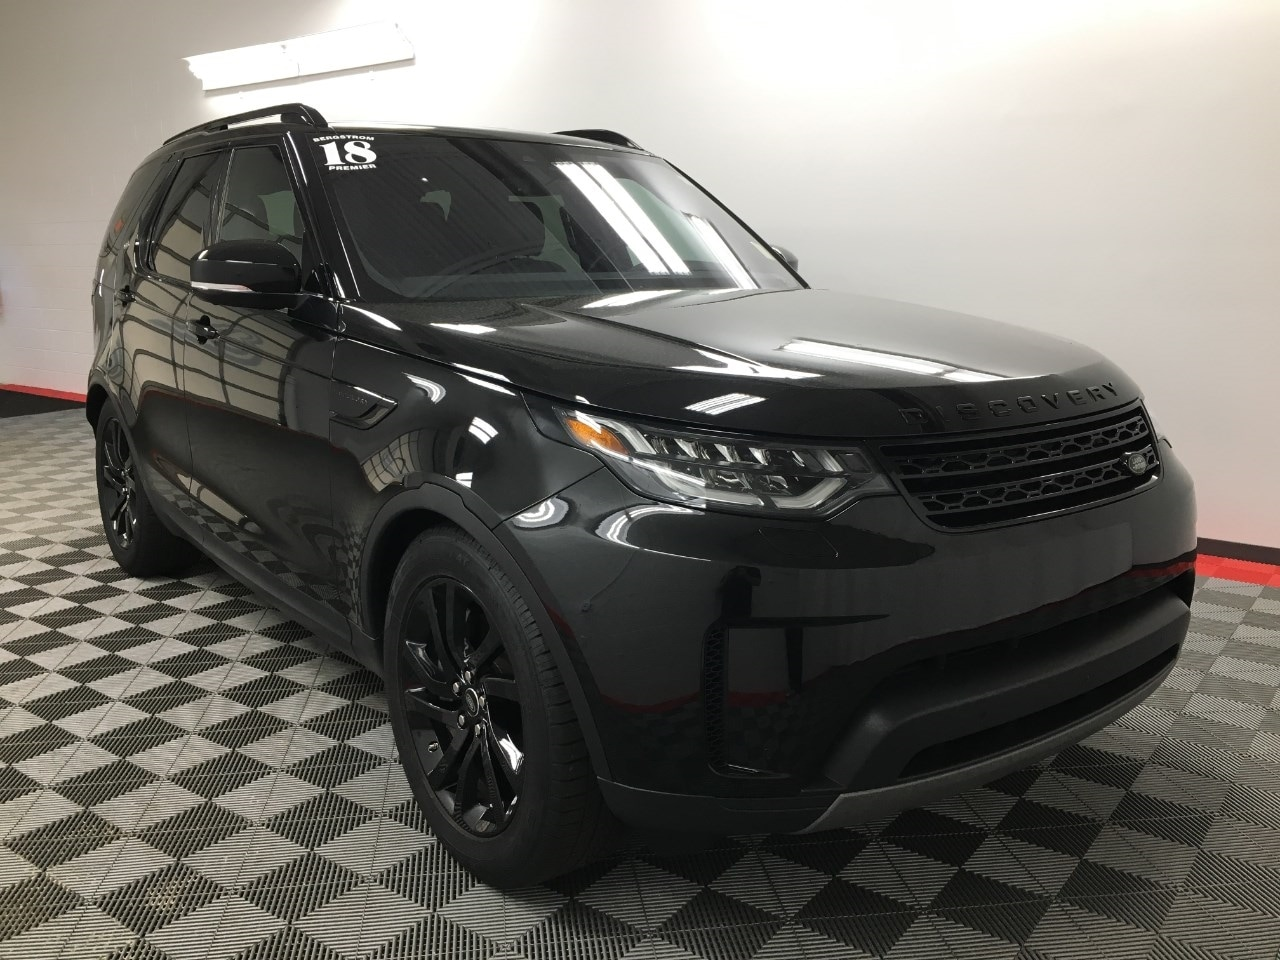 2018 Land Rover Discovery HSE V6 Supercharged suv